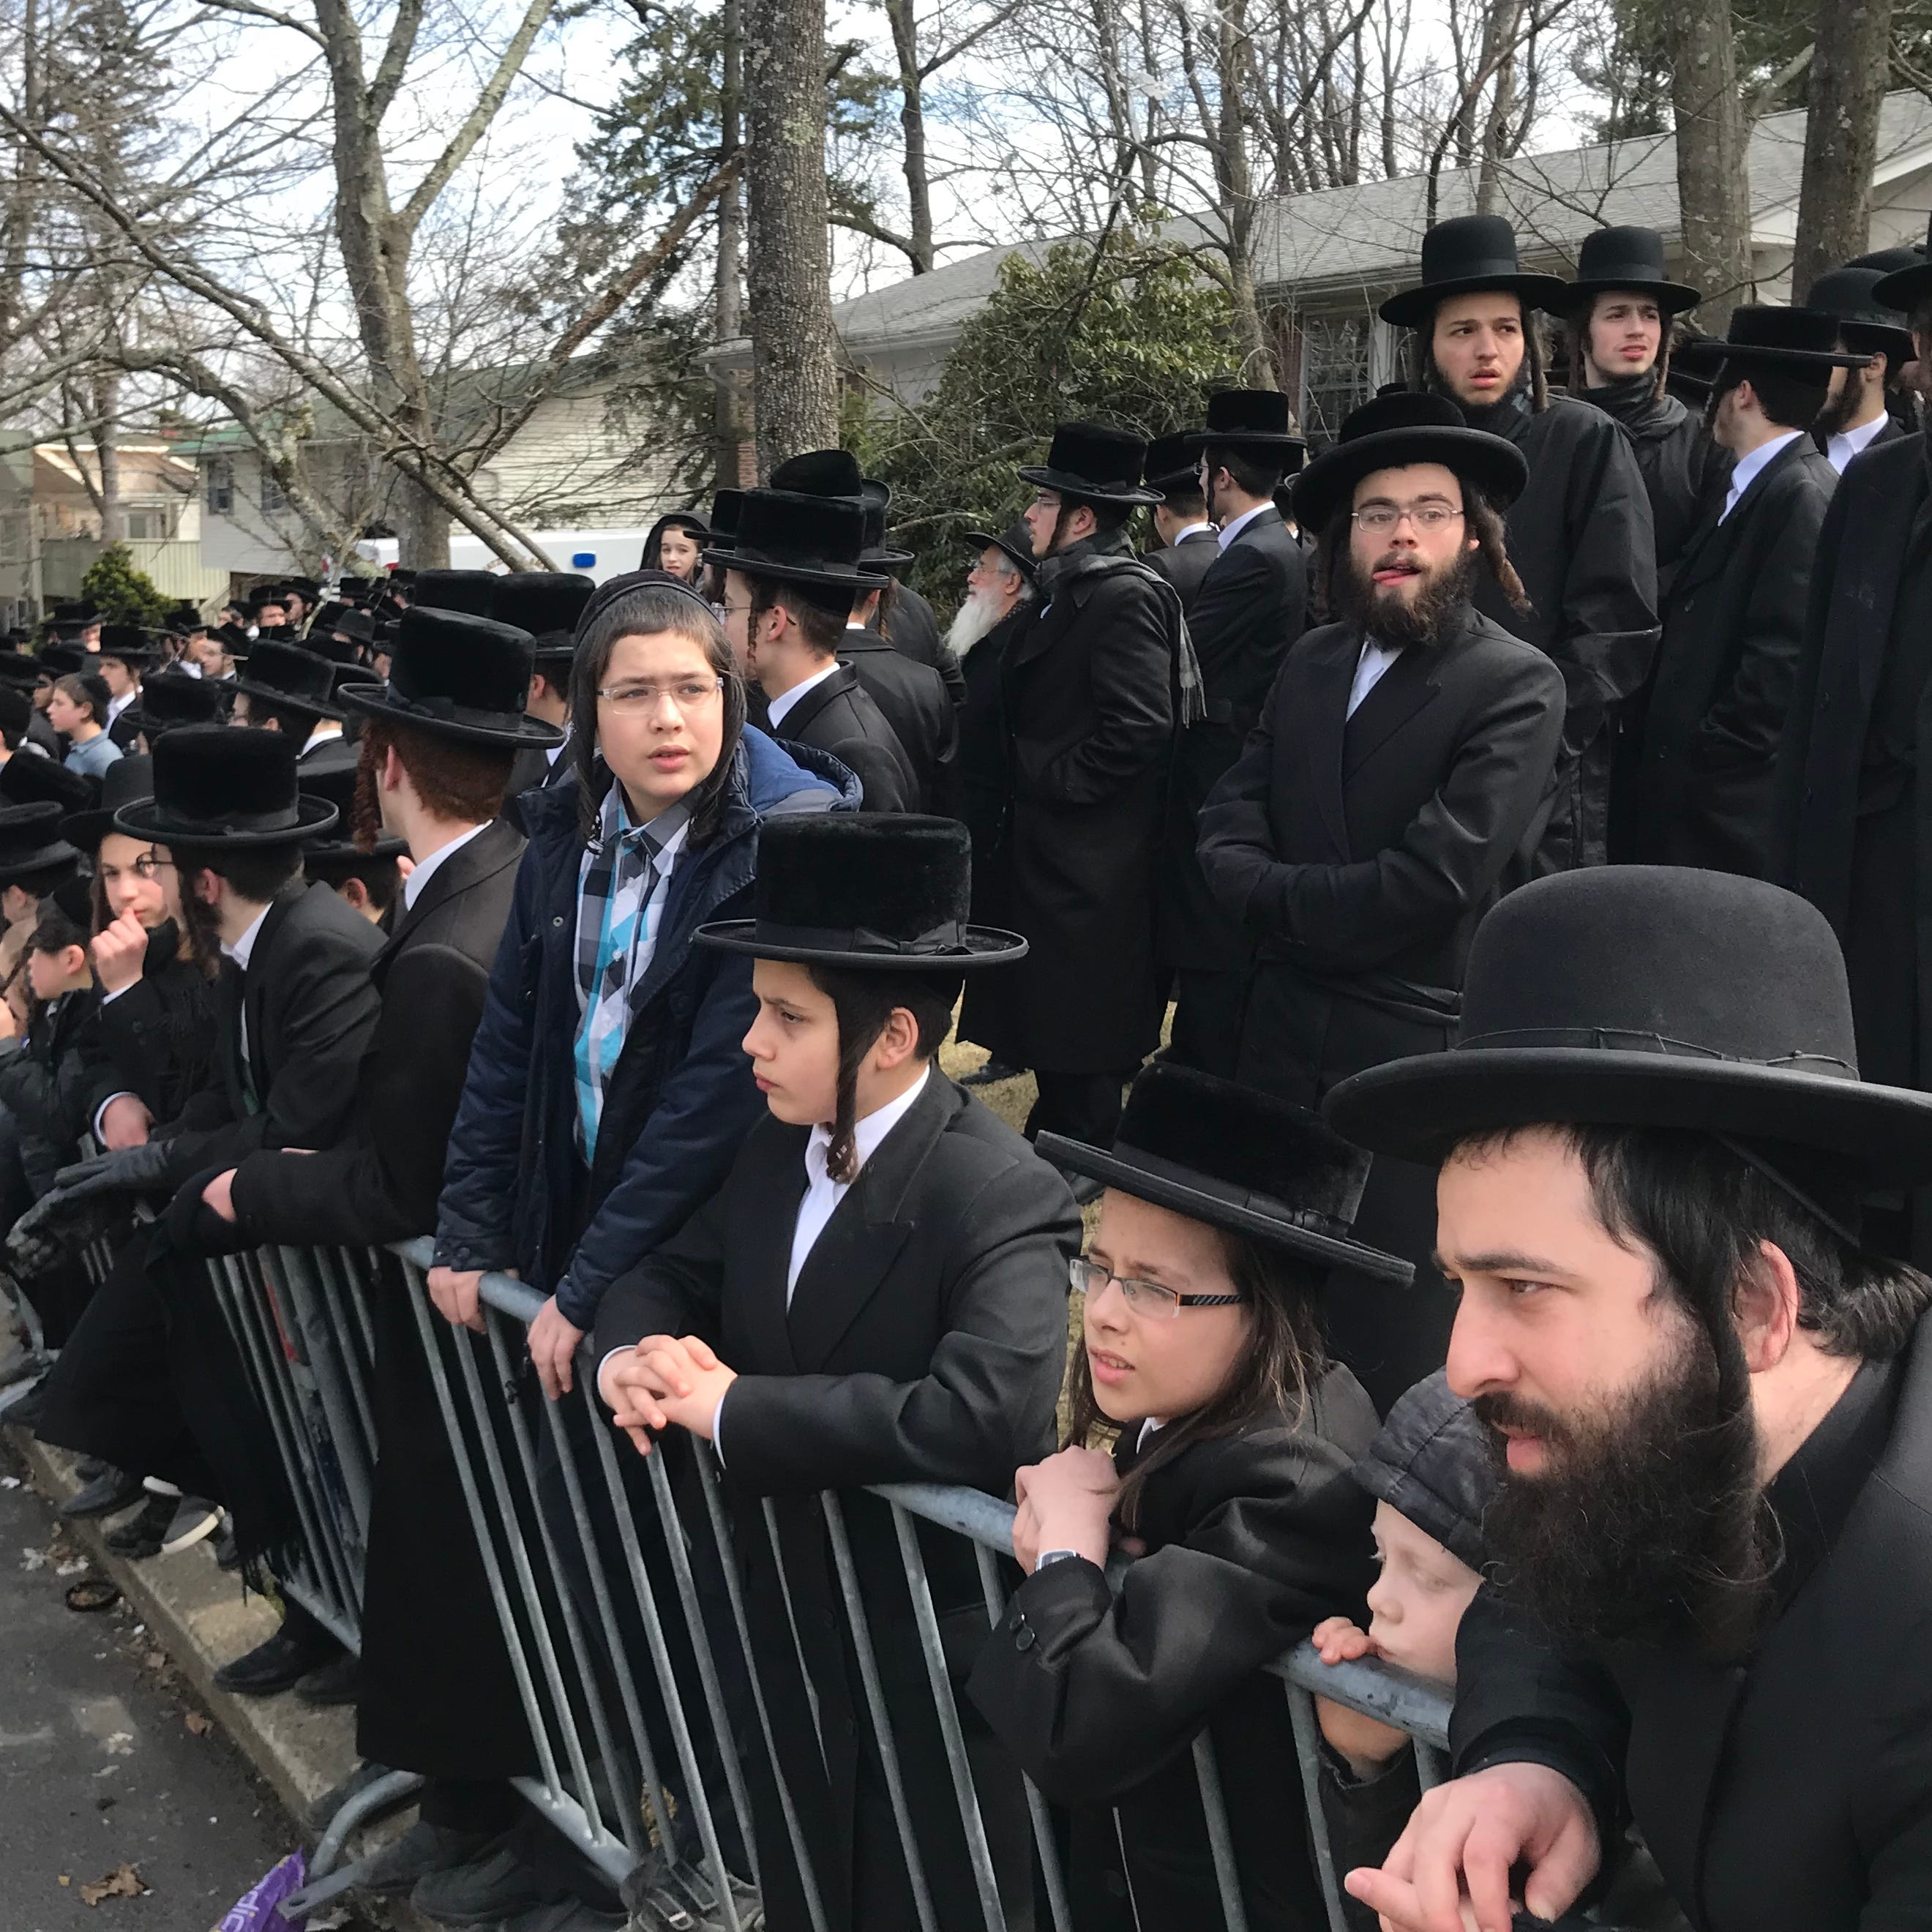 Large crowds mourn rebbe in Monsey today